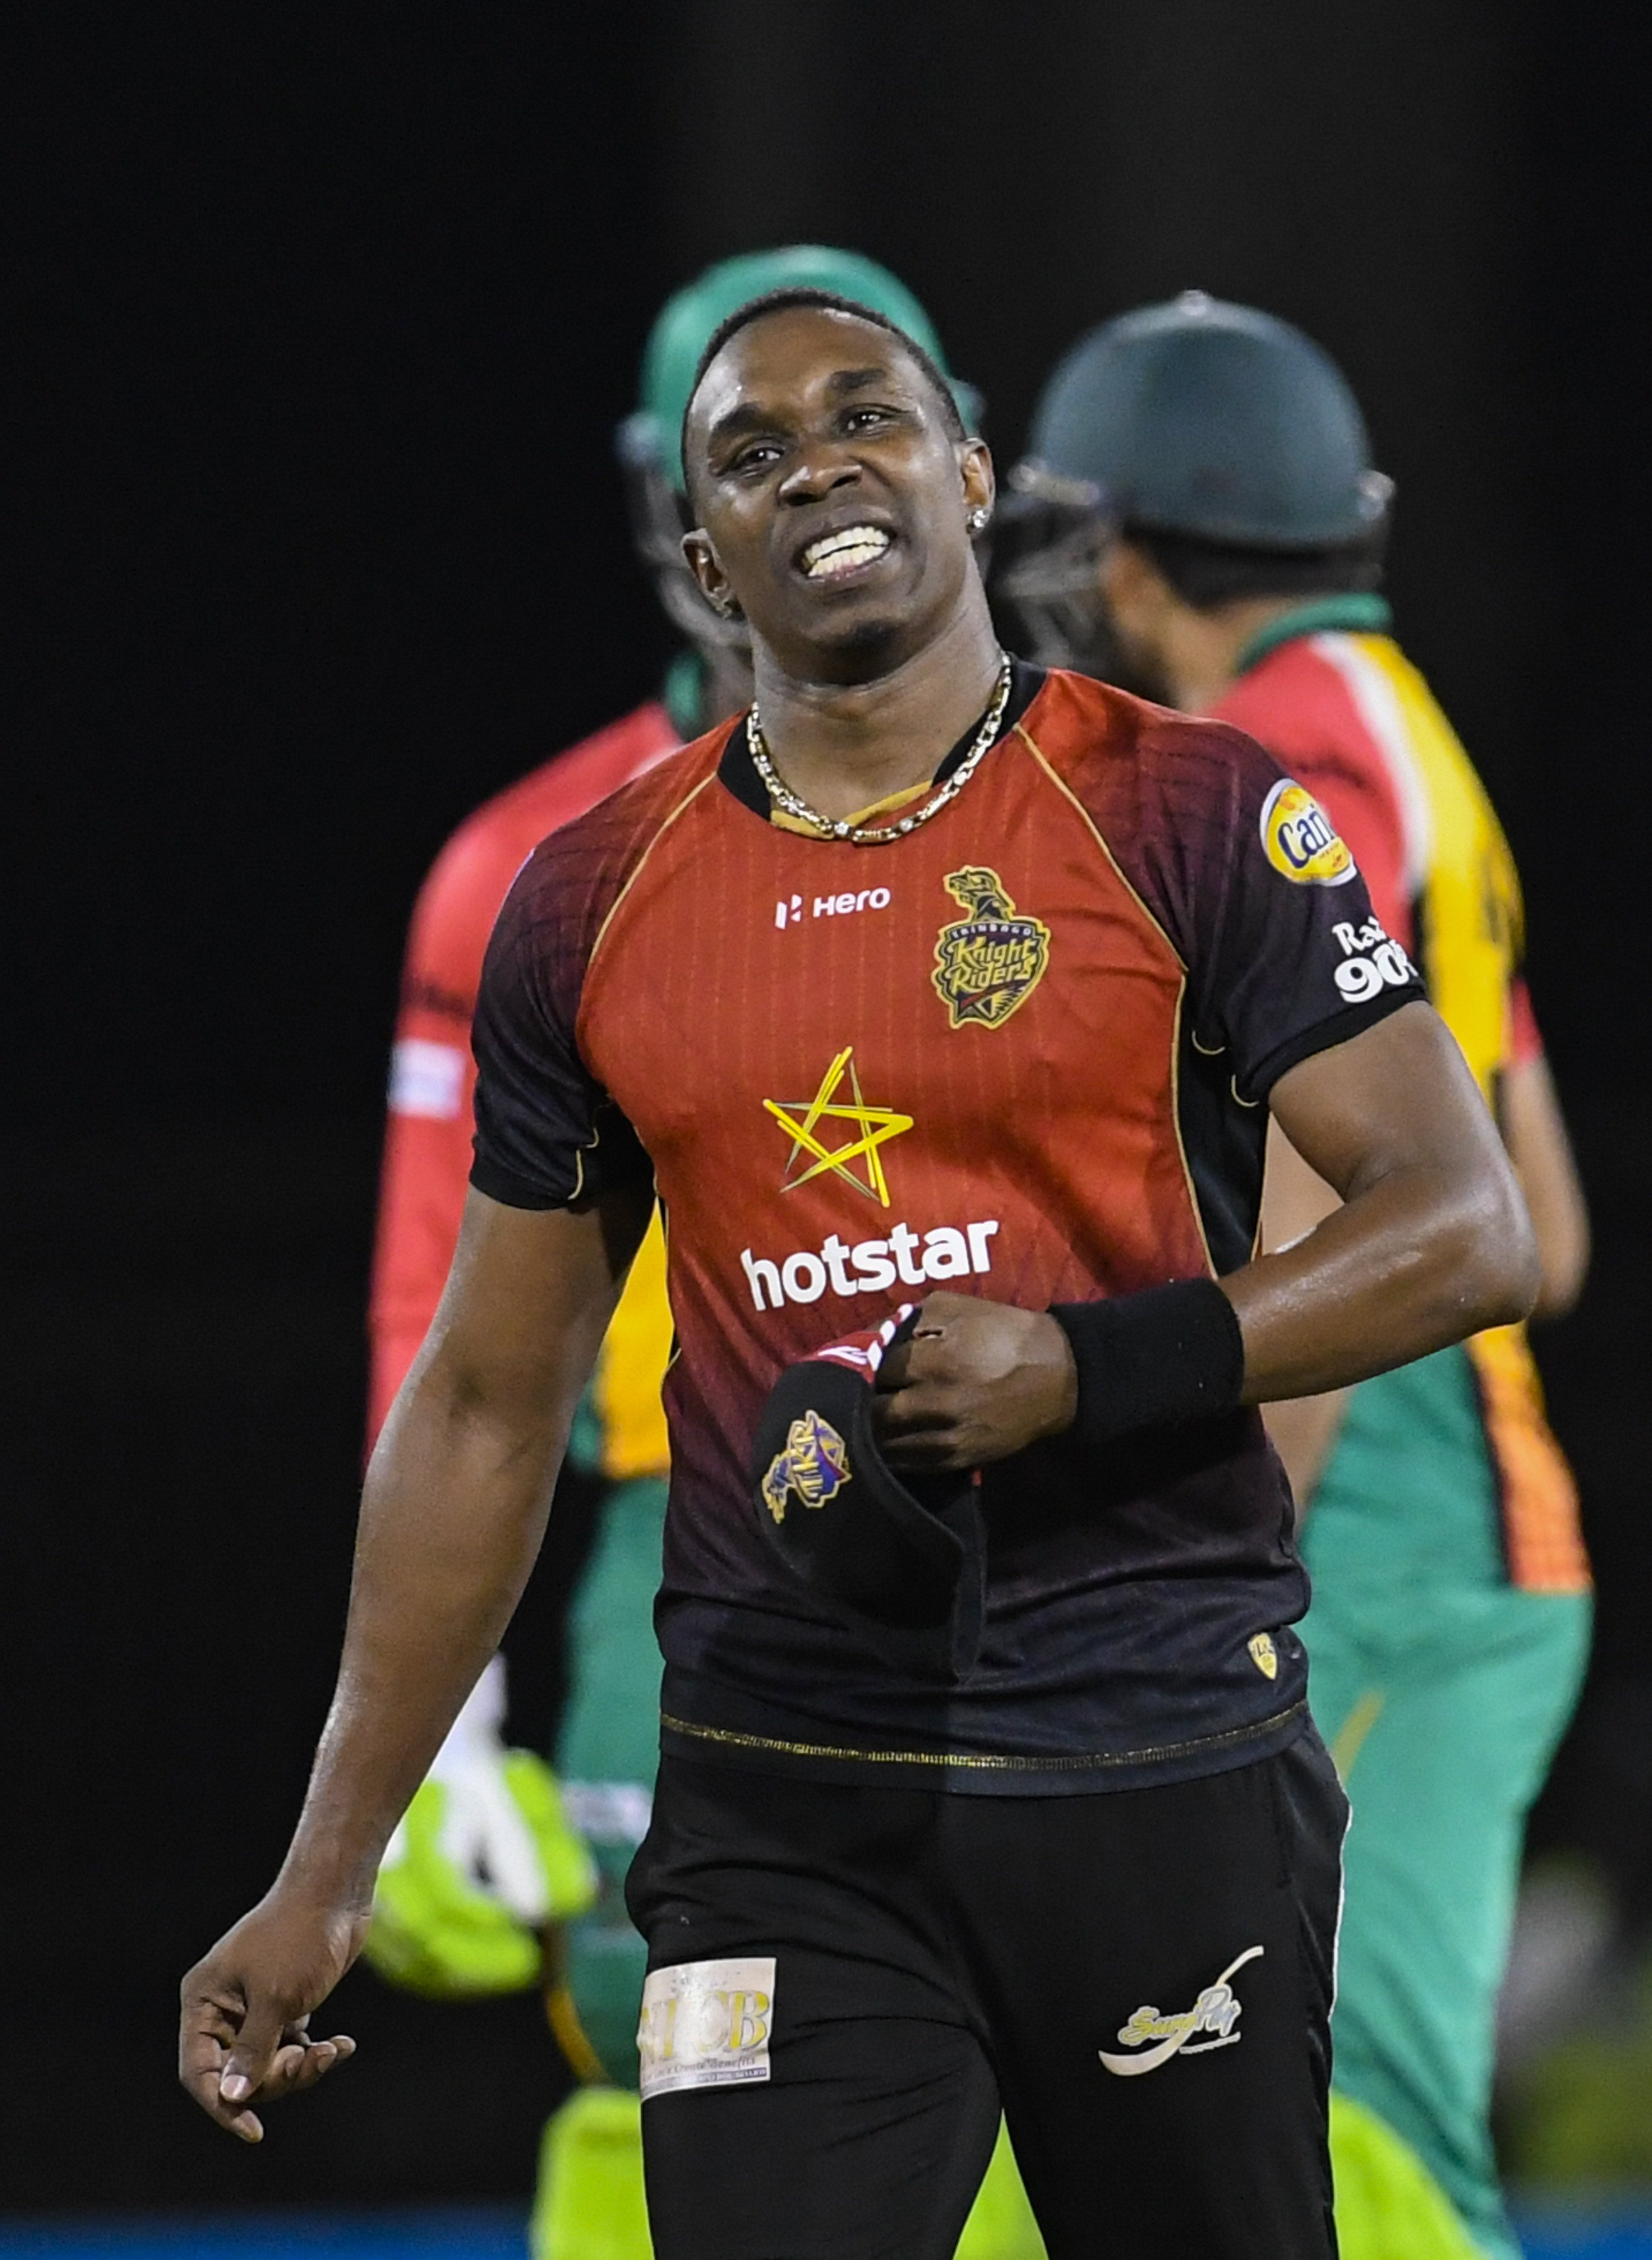 In this handout image provided by CPL T20, Dwayne Bravo of Trinbago Knight Riders express disappointment during the Hero Caribbean Premier League Play-Off match 31 between Guyana Amazon Warriors and Trinbago Knight Riders at Guyana National Stadium on September 11, 2018 in Providence, Guyana (Photo by Randy Brooks - CPL T20/Getty Images)